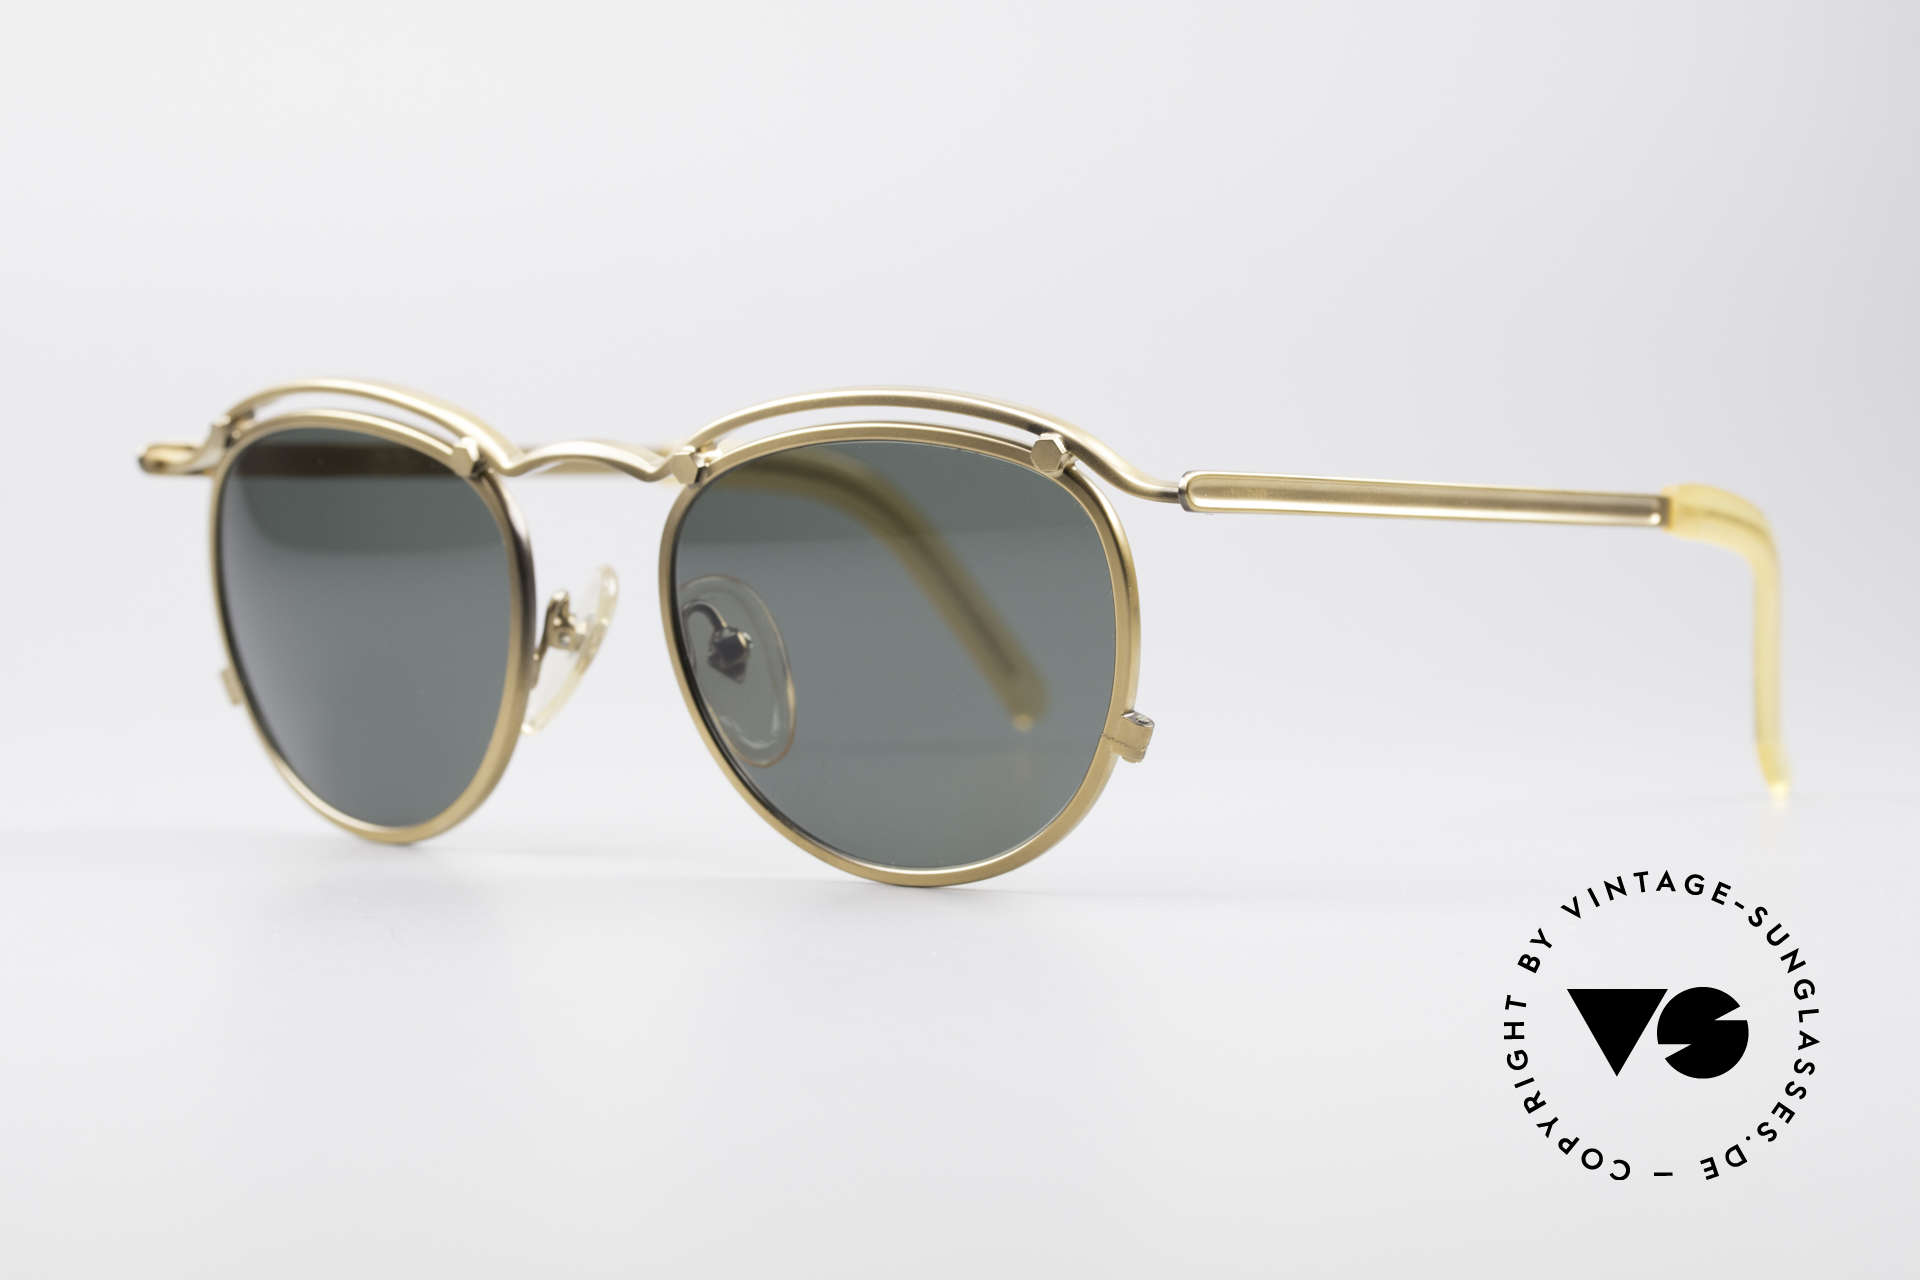 Jean Paul Gaultier 56-1174 Steampunk Panto Shades, high-end frame (built to last) in brass / antique gold, Made for Men and Women